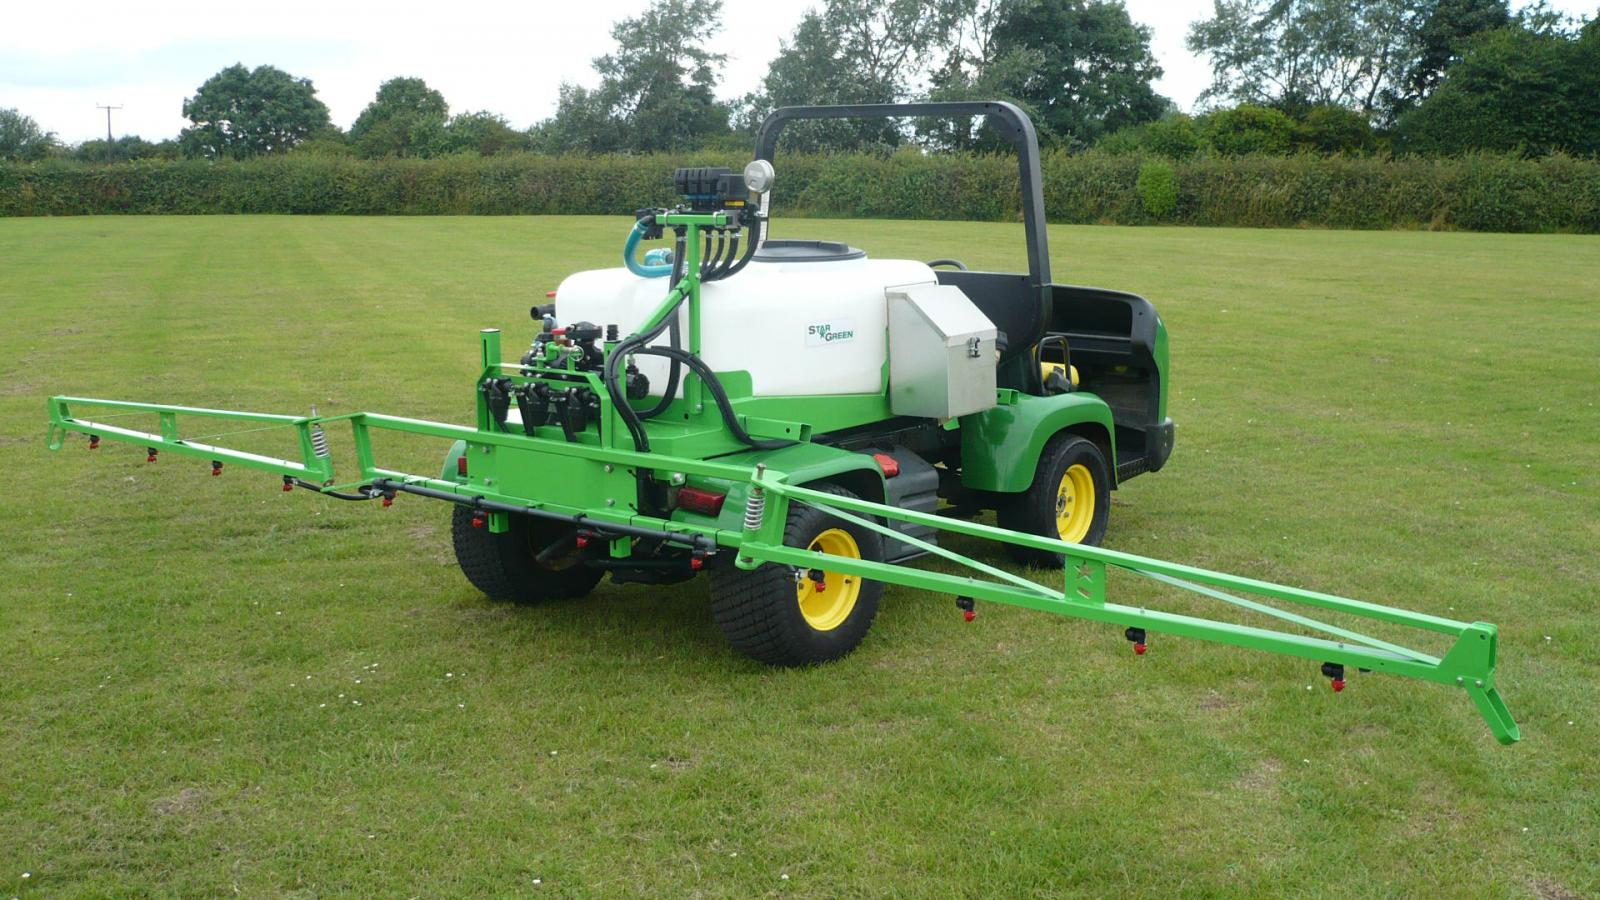 The DM450Pro and DM700Pro STARGREEN UTV Demount Amenity Sprayers are for professional groundsmen and greenkeepers to use with specialist vehicles including John Deere ProGator, Toro Workman and Jacobsen Truckster type utility trucks.